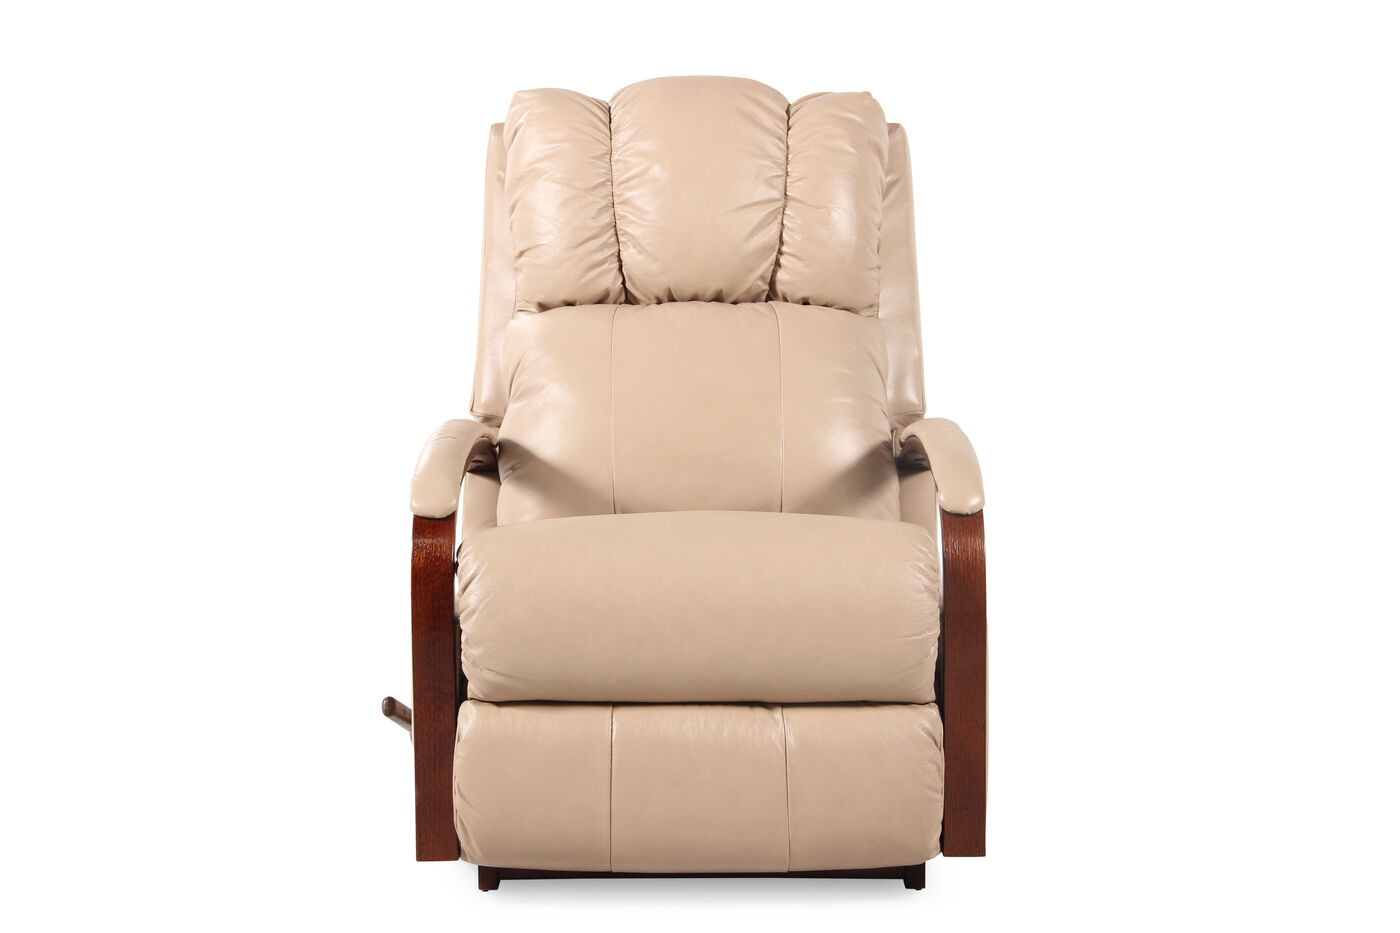 La Z Boy Harbor Town Rocker Recliner Mathis Brothers  : IMG4674 from www.mathisbrothers.com size 1400 x 933 jpeg 60kB